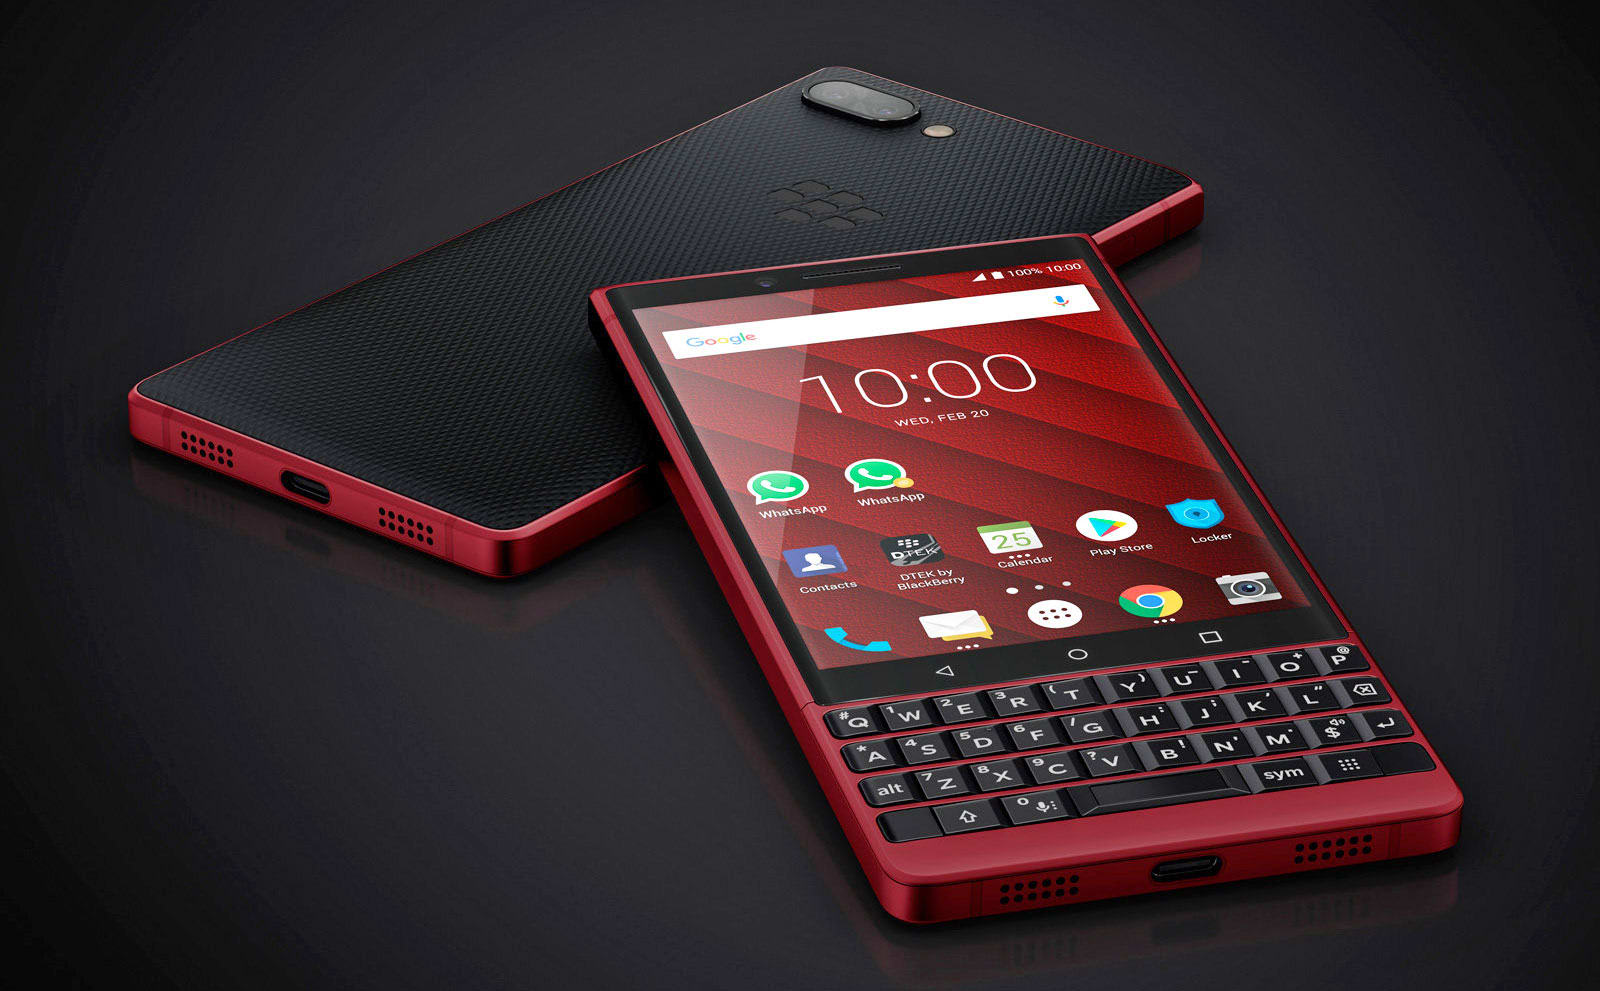 4b9f11bdfa8 BlackBerry KEY2 will be available in a souped-up red model